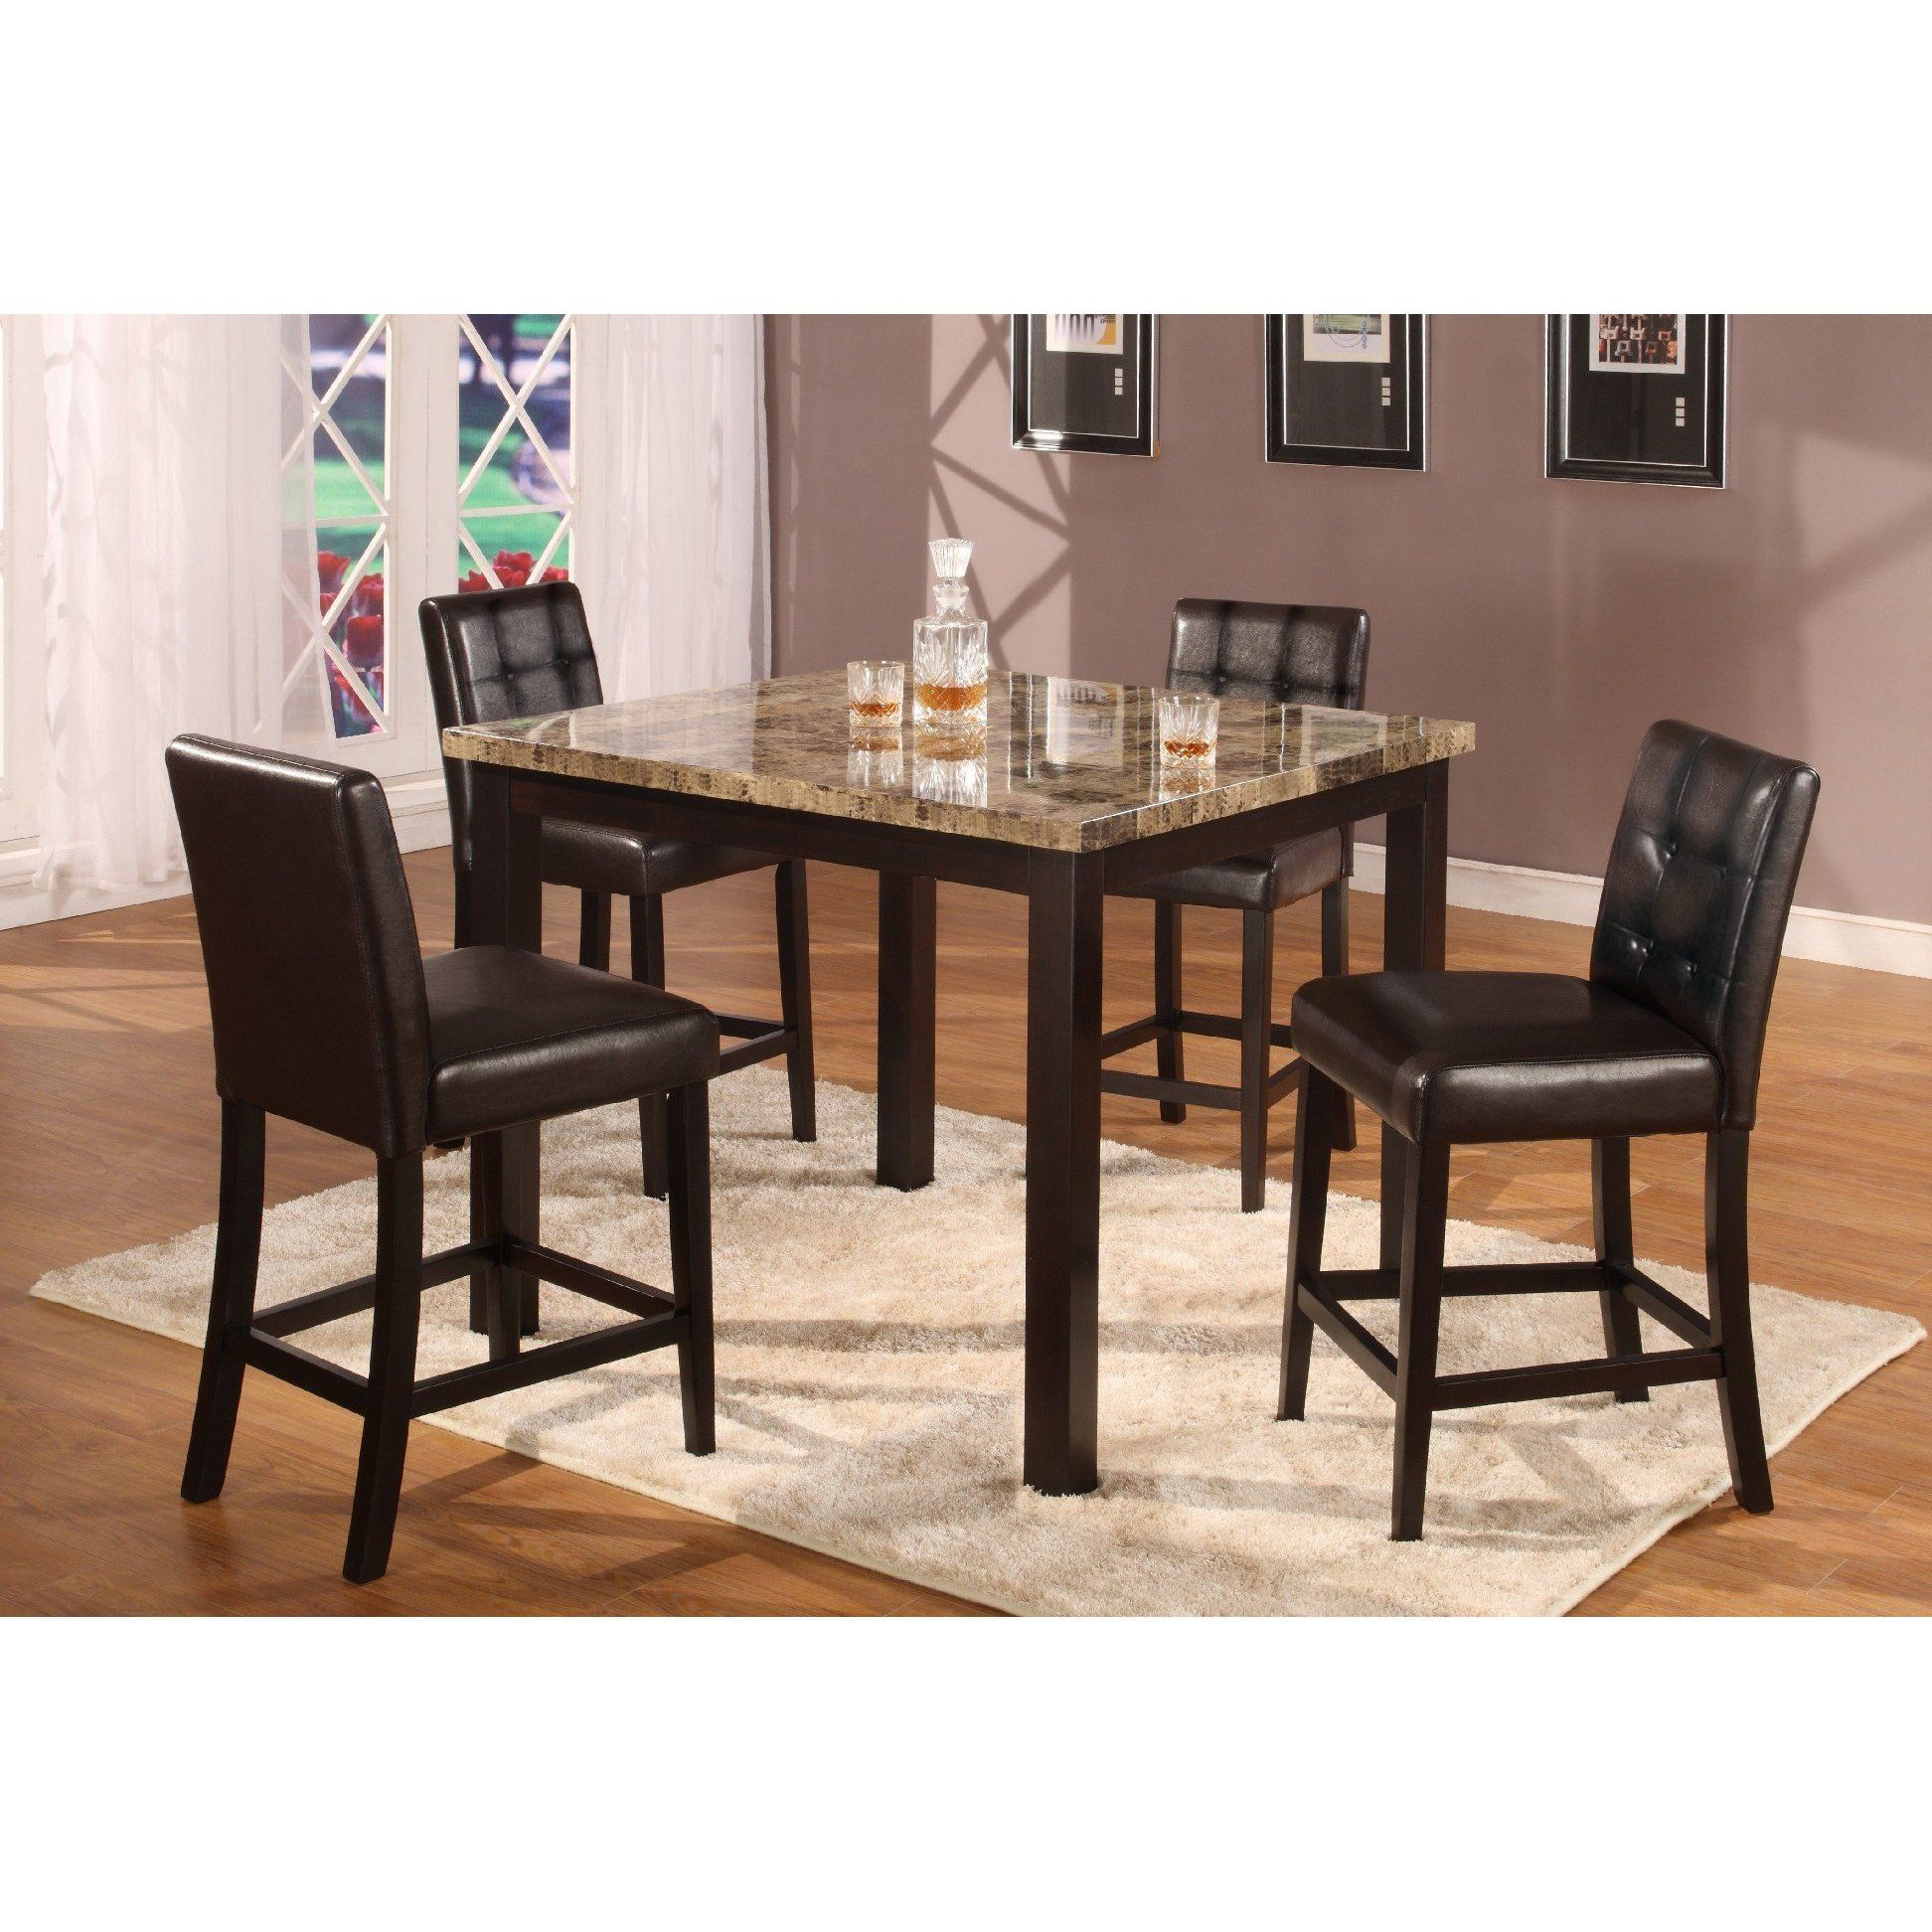 5pc Dark Artificial Marble Top Counter Height Dinette